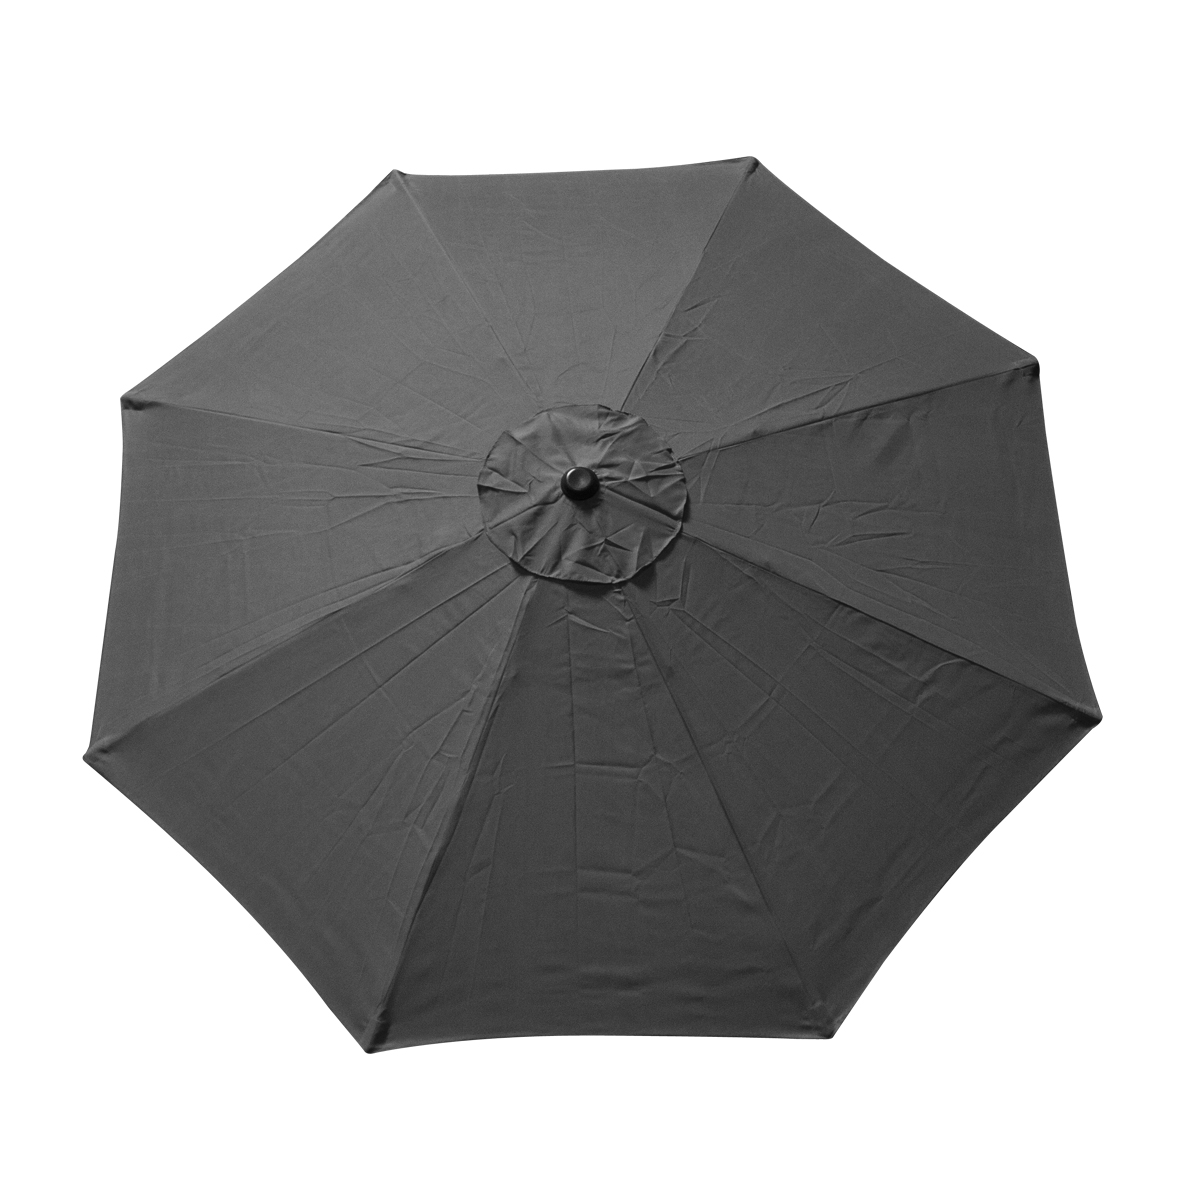 9 FT 8 Ribs Replacement Umbrella Cover Canopy Grey Top ...